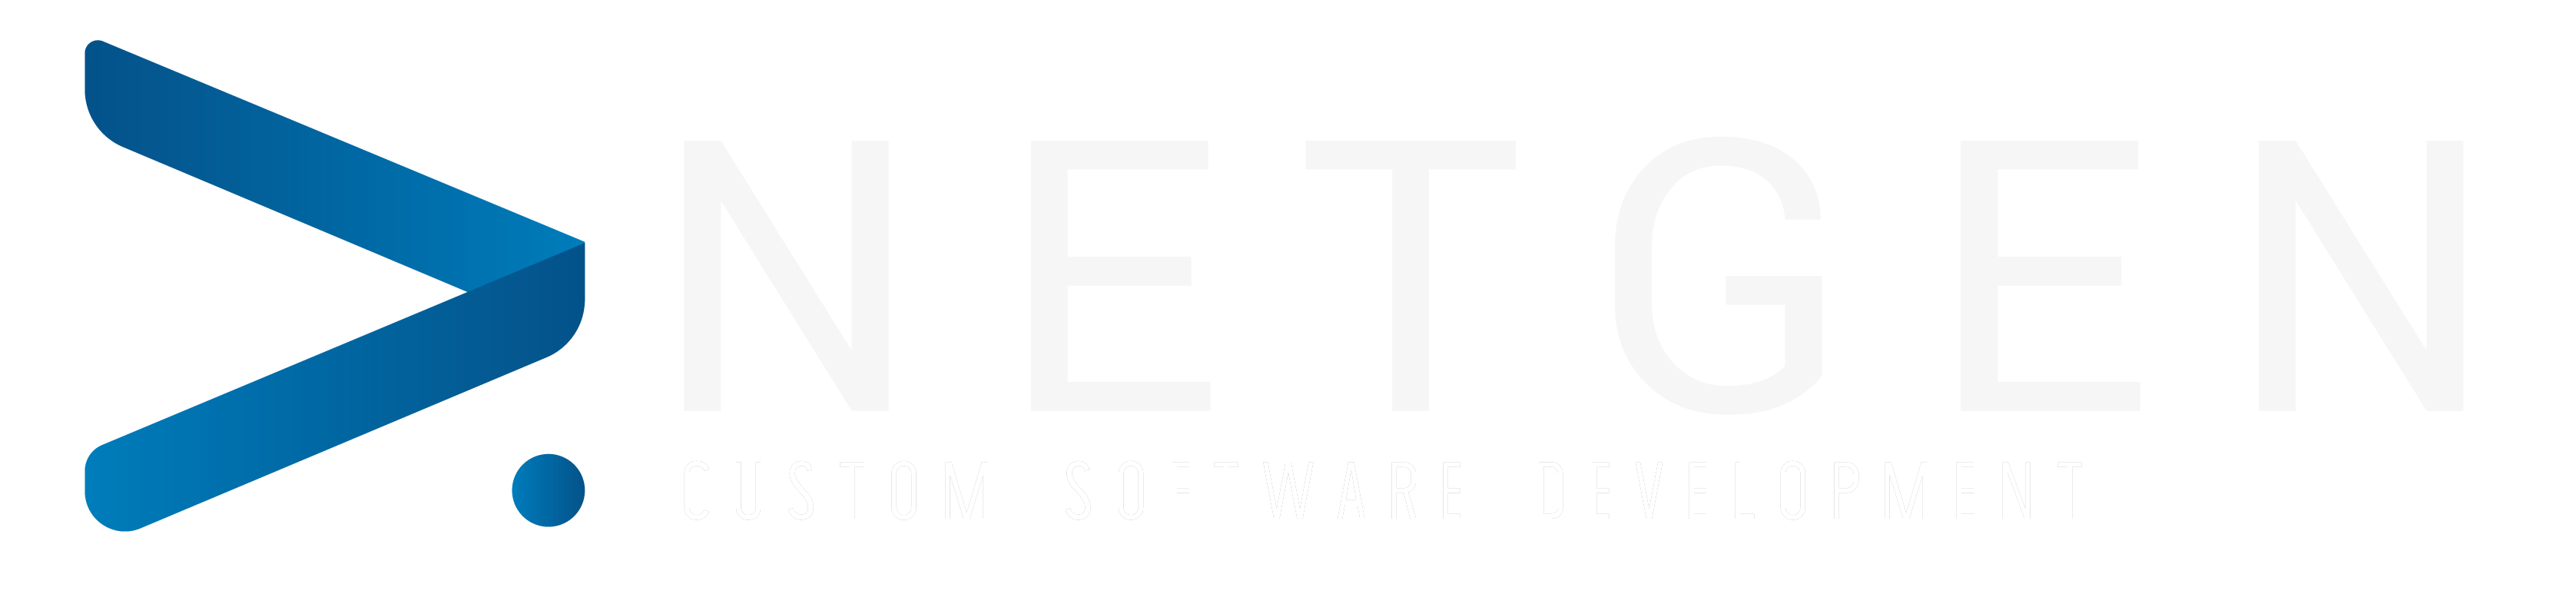 Netgen Custom Software Development